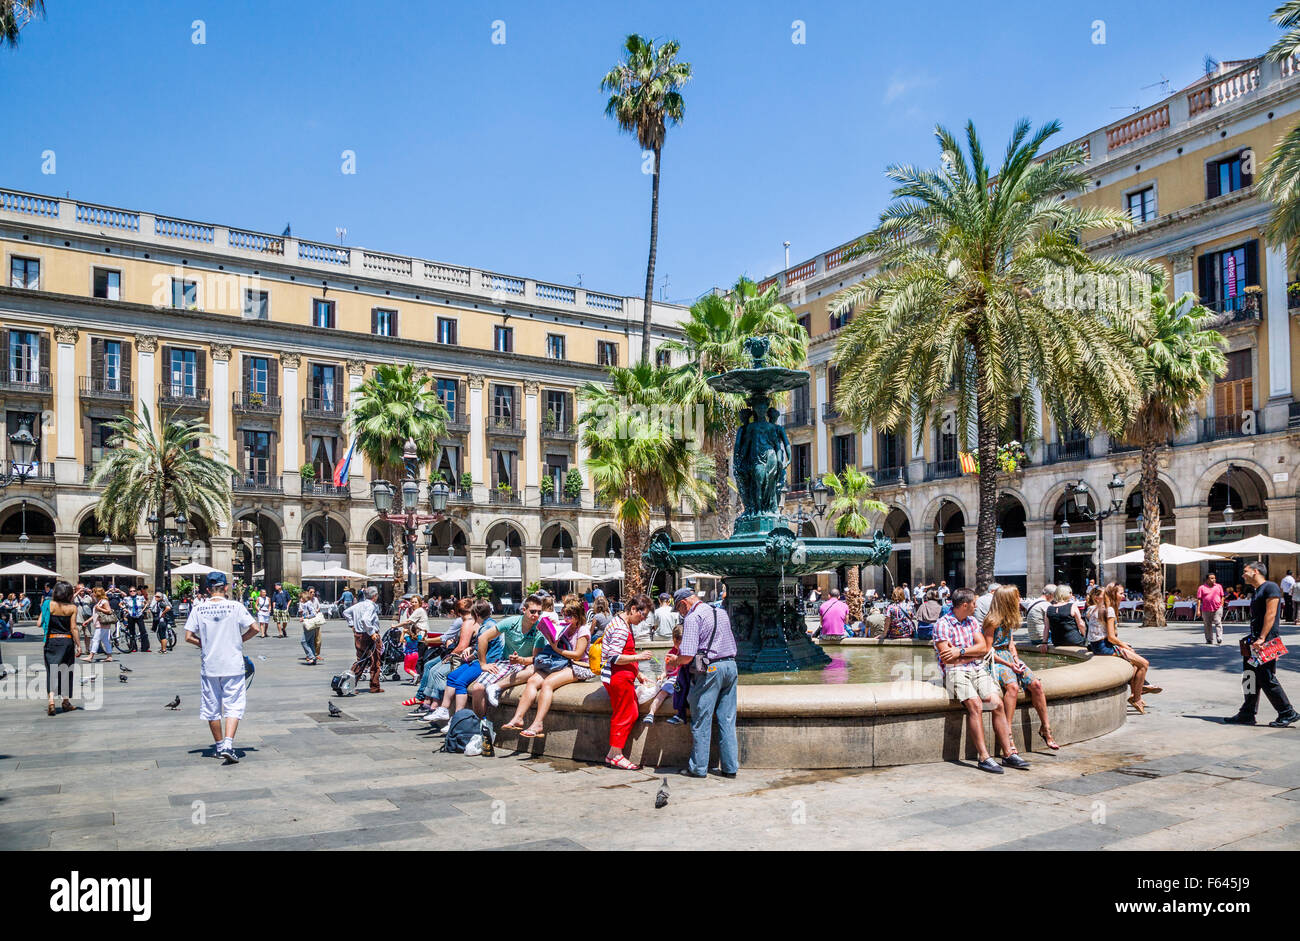 Spain, Catalonia, Barcelona, Barri Góthic, fountain at Placa Reial, a popular meeting point and outdoor venue - Stock Image